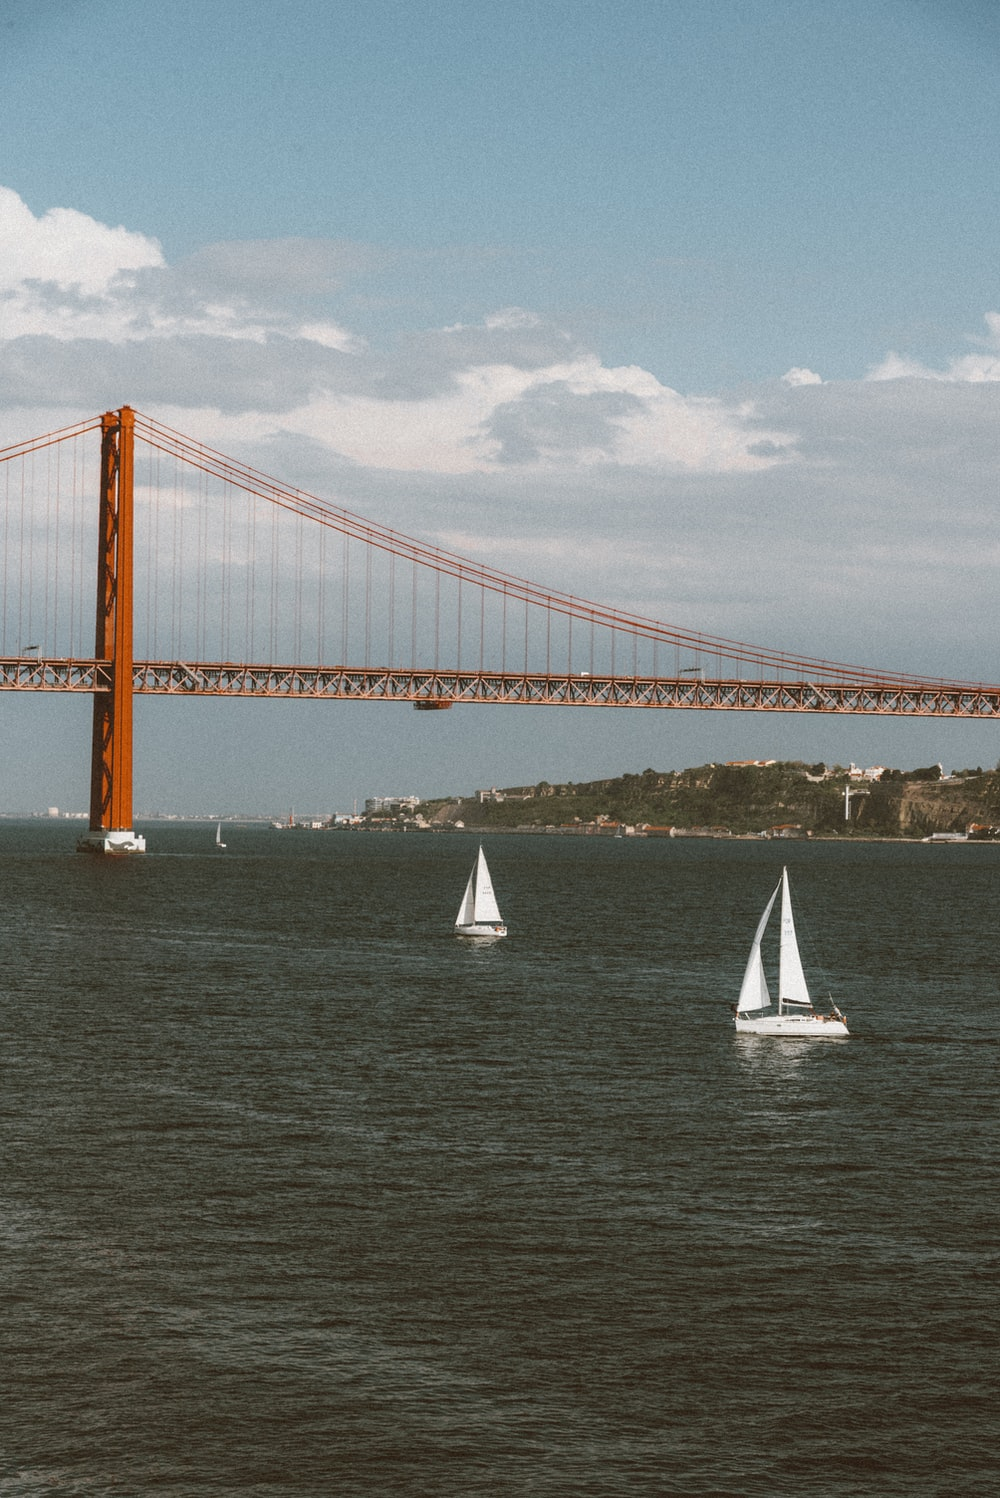 two white sailboats on body of water near bridge during daytime